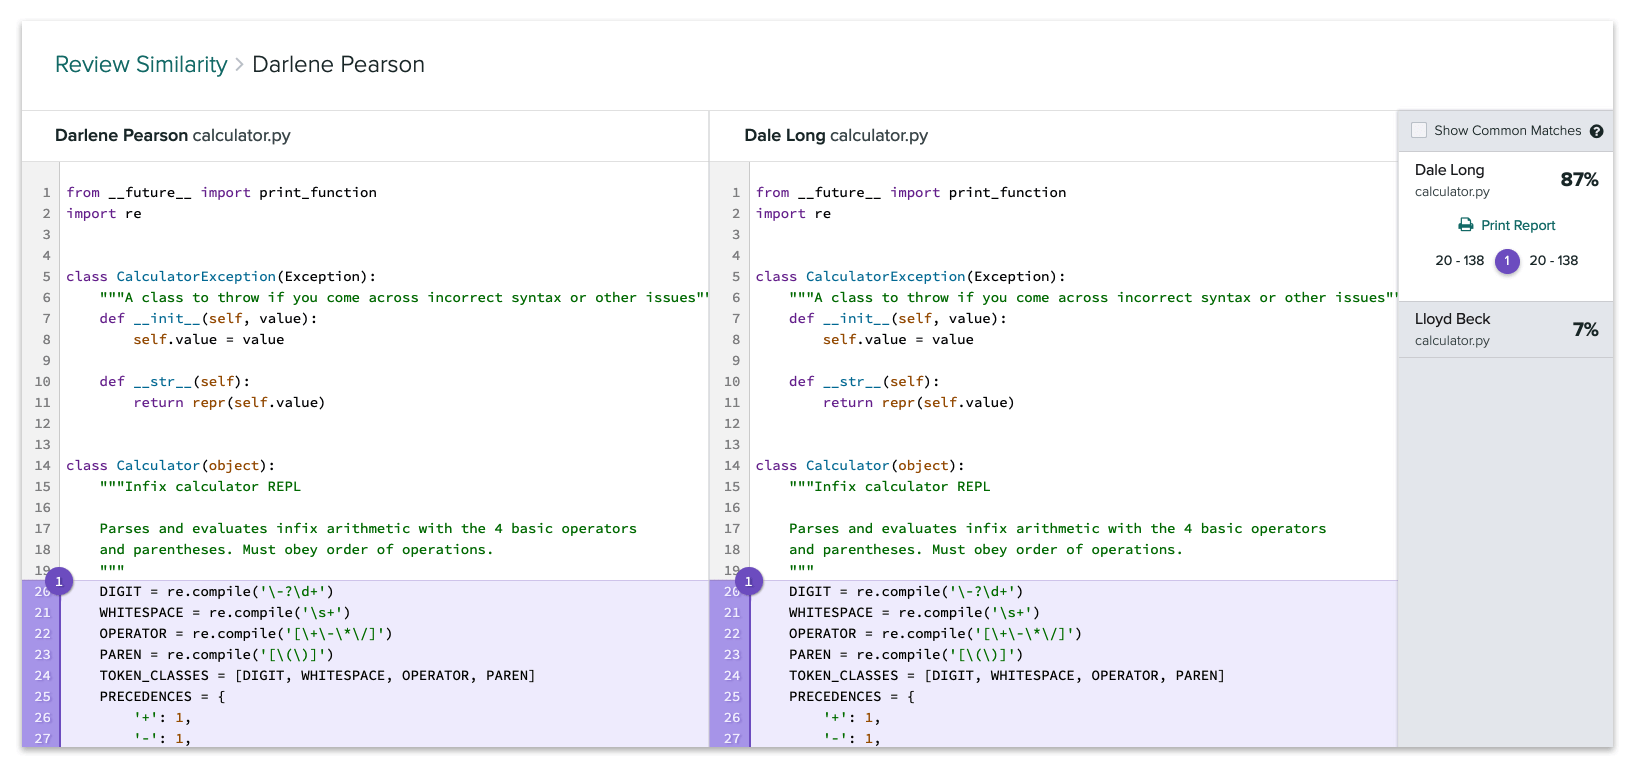 Comparison view of two files showing the similar blocks of code